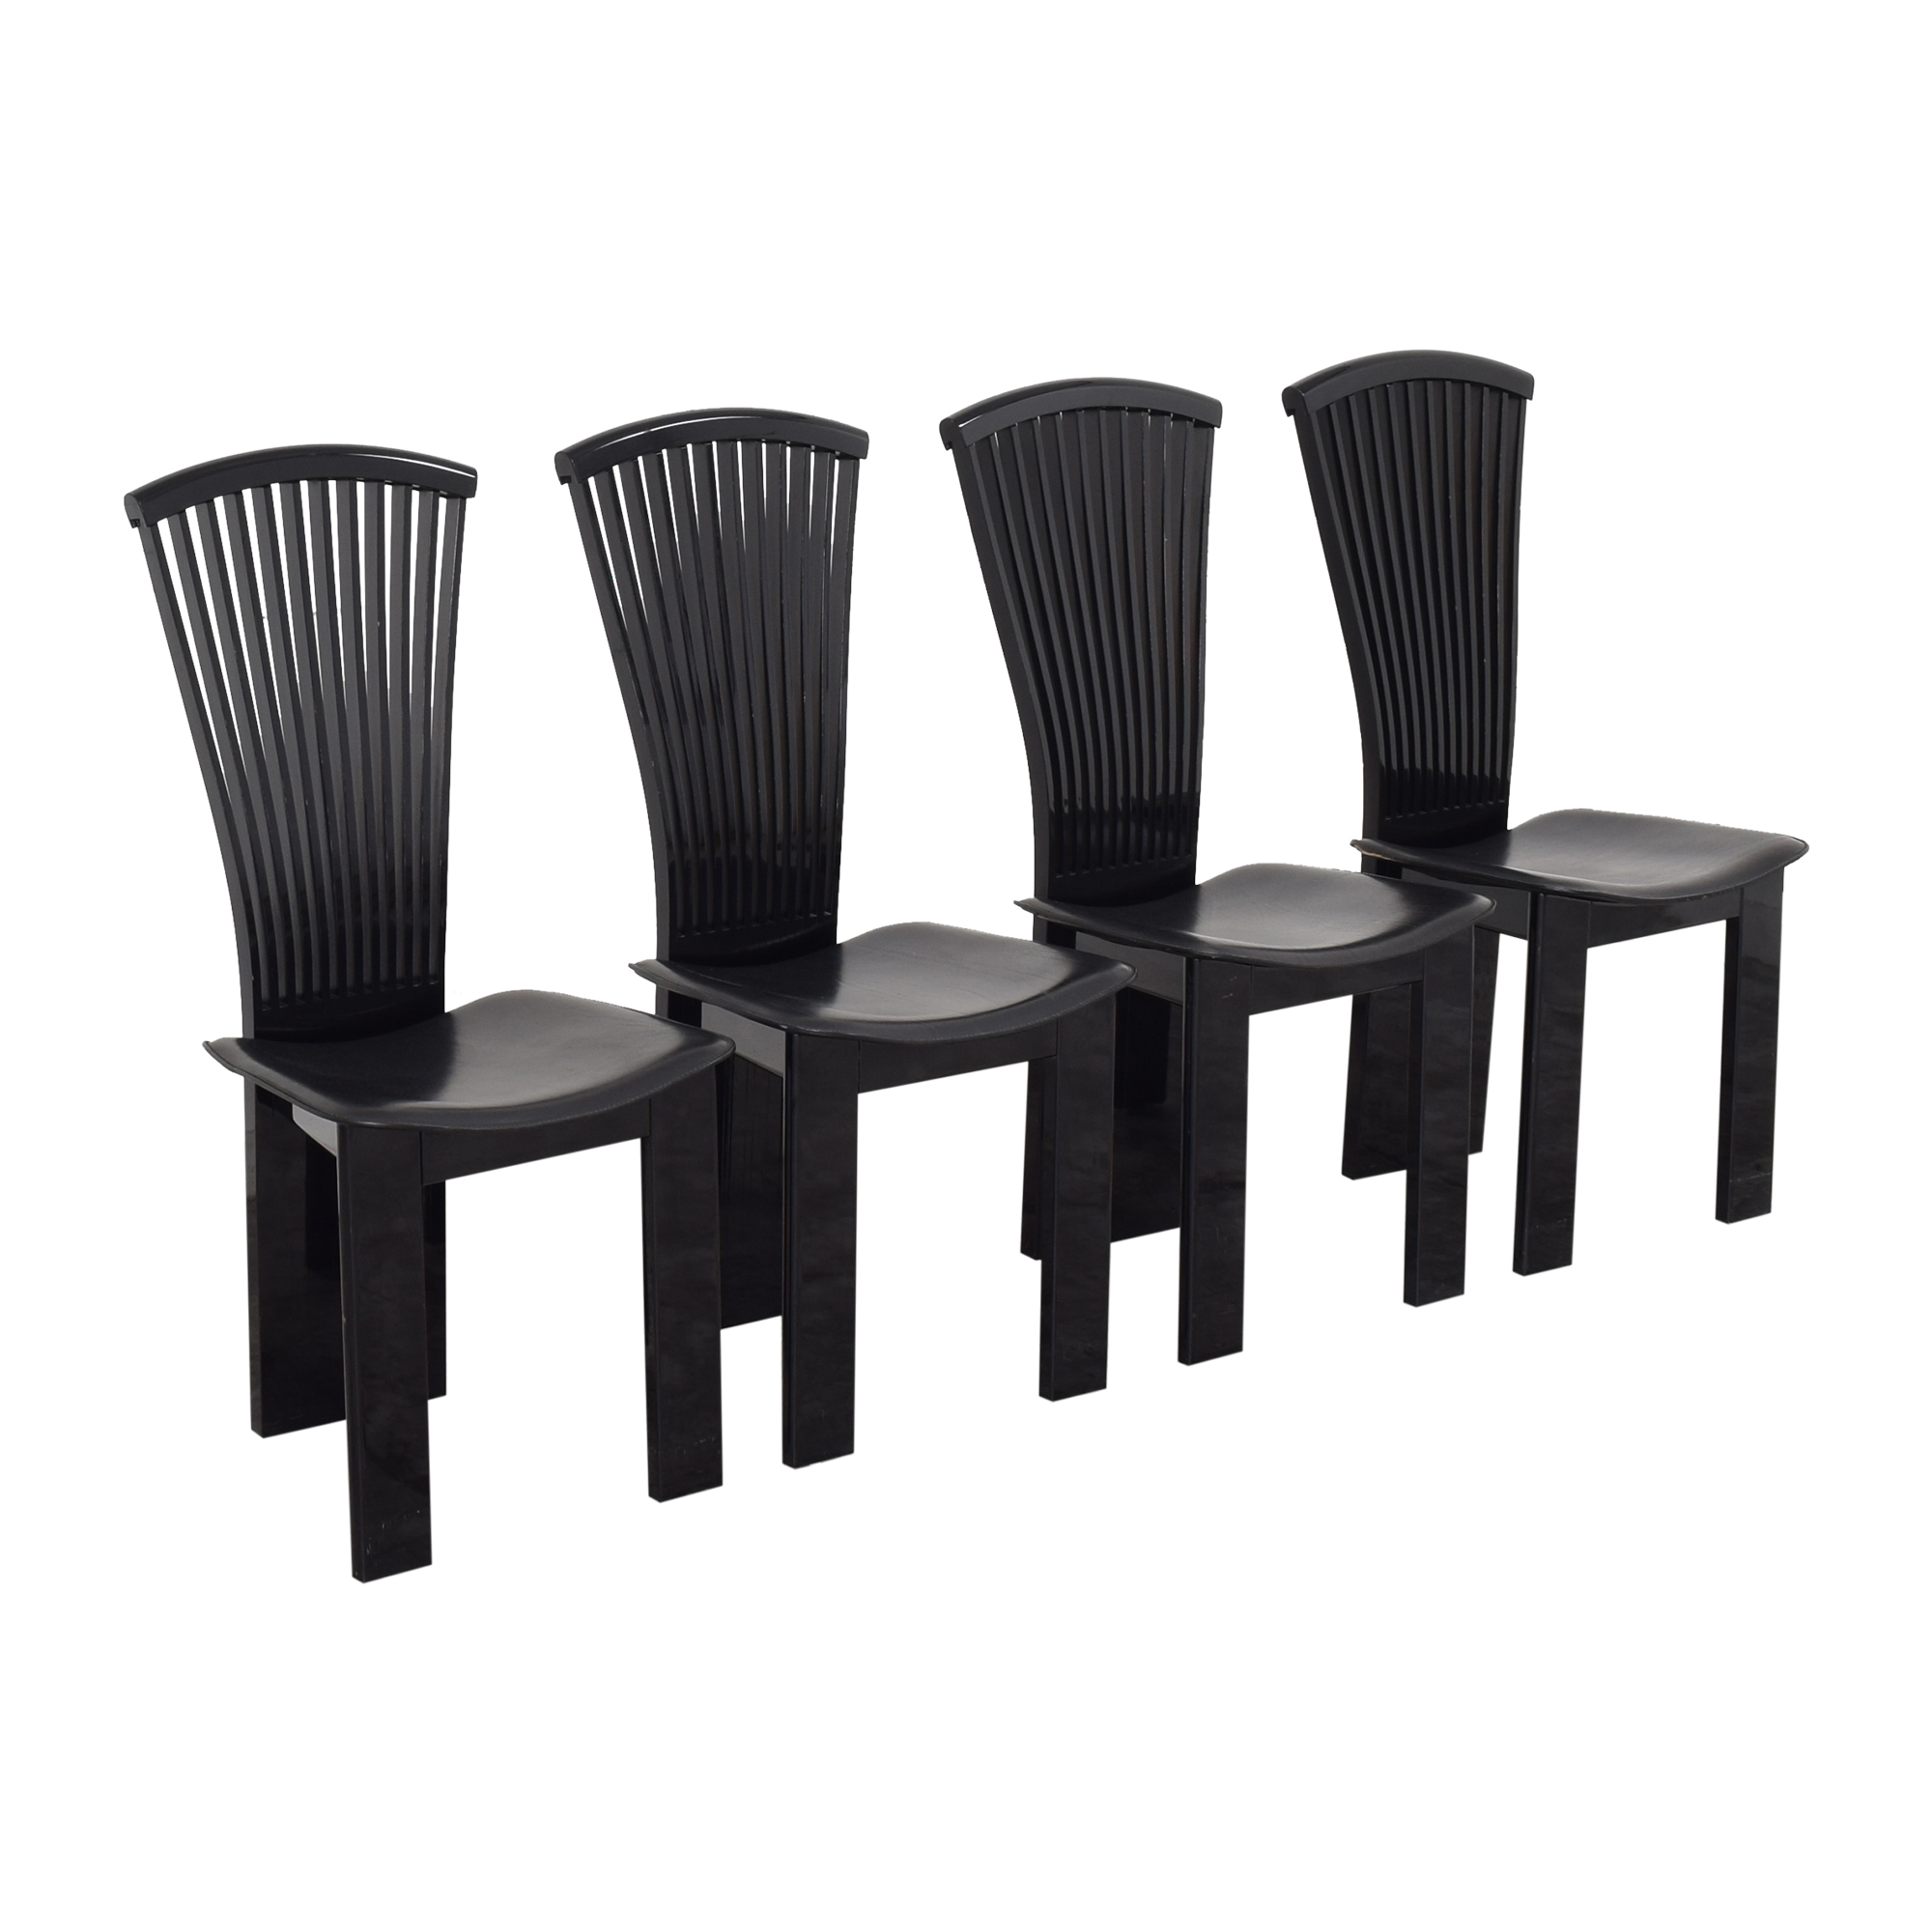 Pietro Costantini Pietro Costantini High Back Dining Chairs for sale